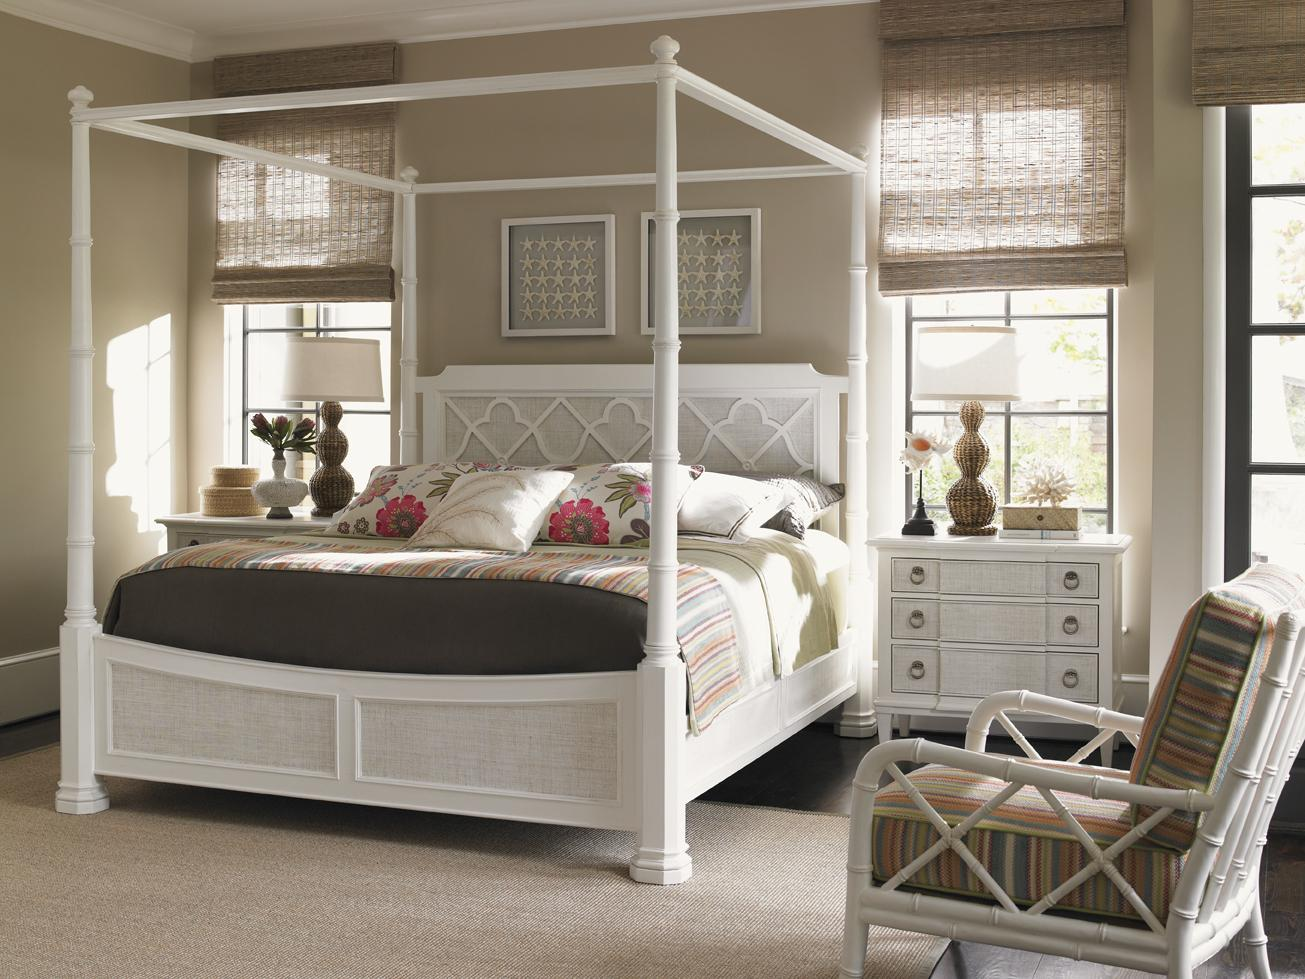 Ivory Key Queen Bedroom Group by Tommy Bahama Home at Baer's Furniture